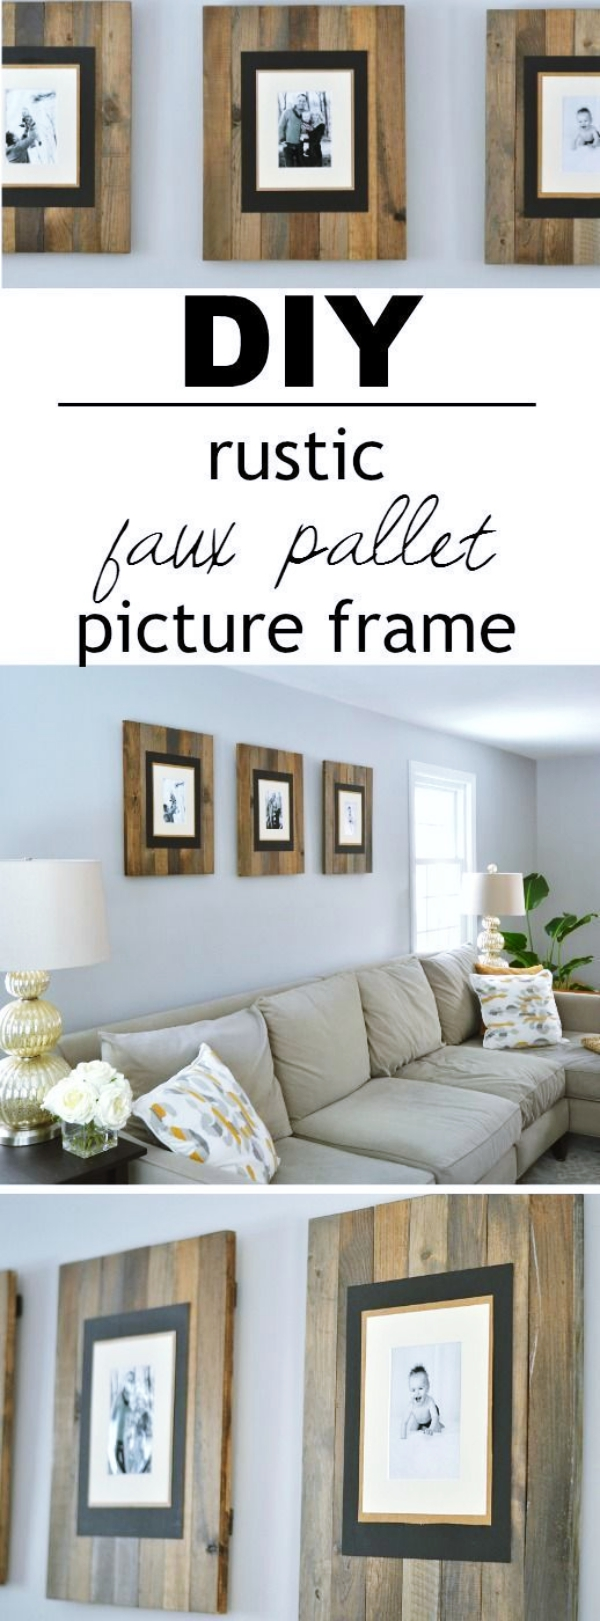 40 Beautiful DIY Photo Frame Ideas to Use in Special Moments - Bored Art